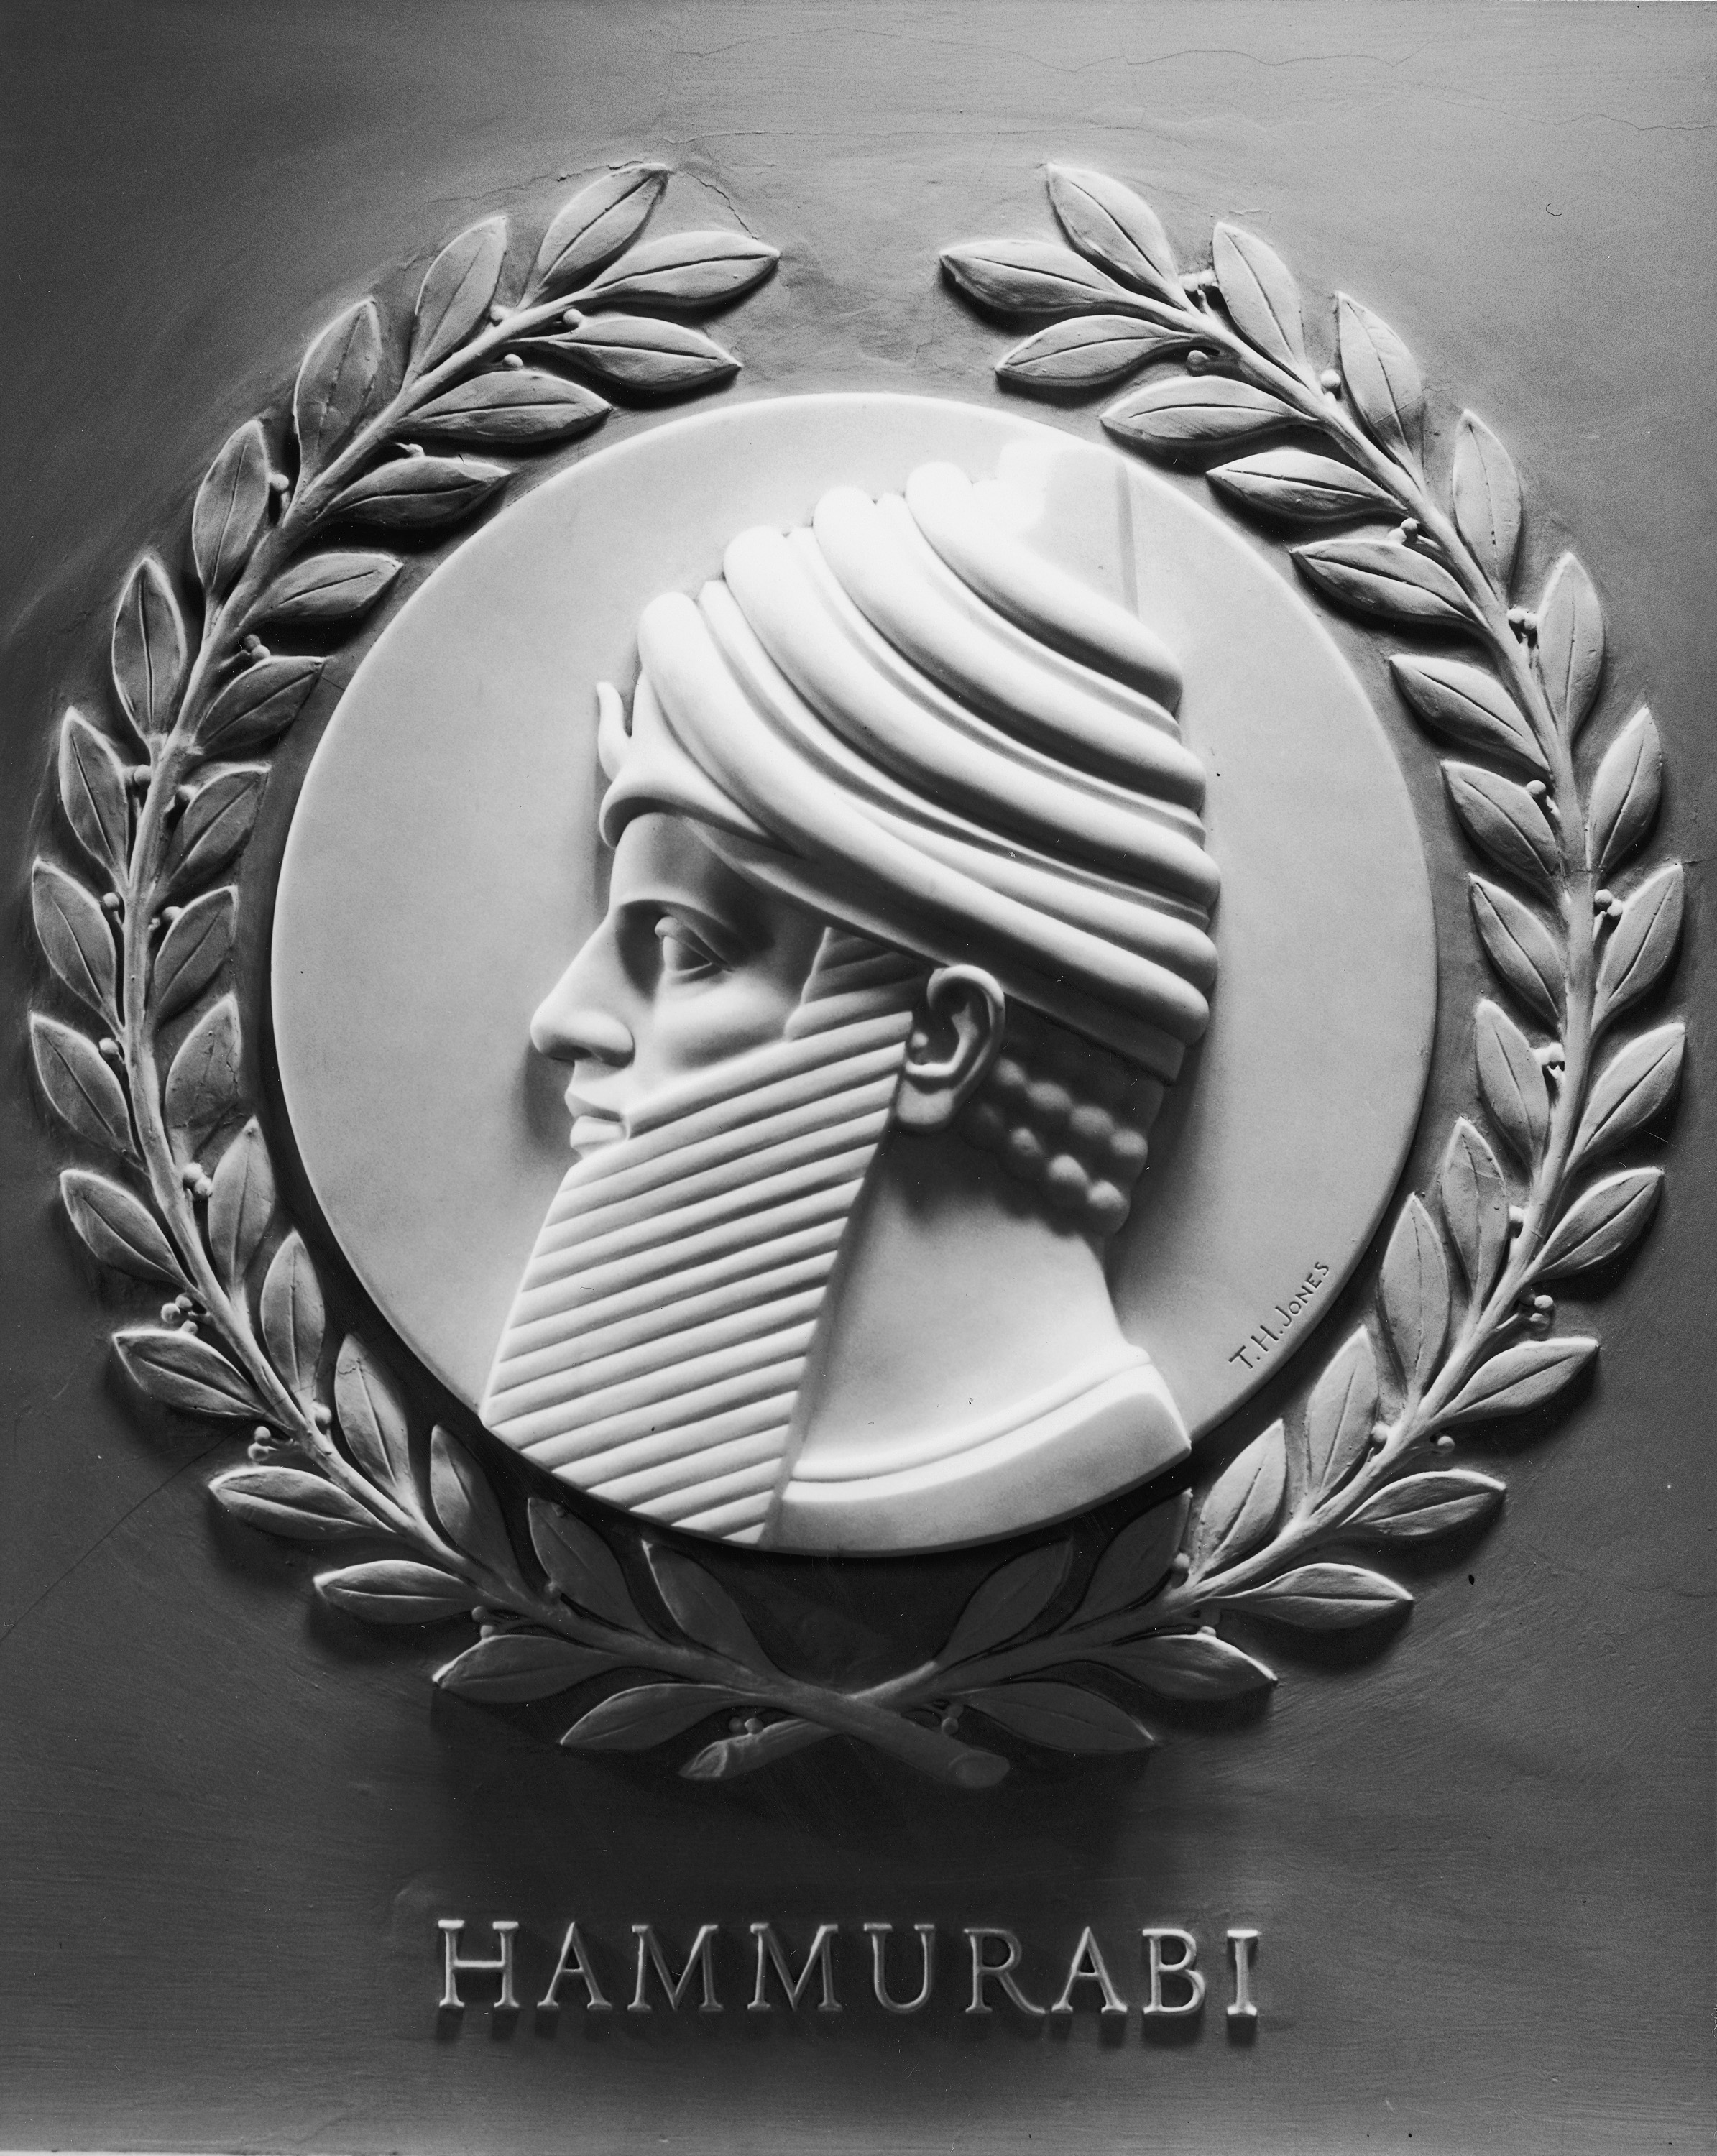 the code of hammurabi one of The code of hammurabi is one of the oldest deciphered writings of length in the world, and features a code of law from ancient babylon in mesopotamia.